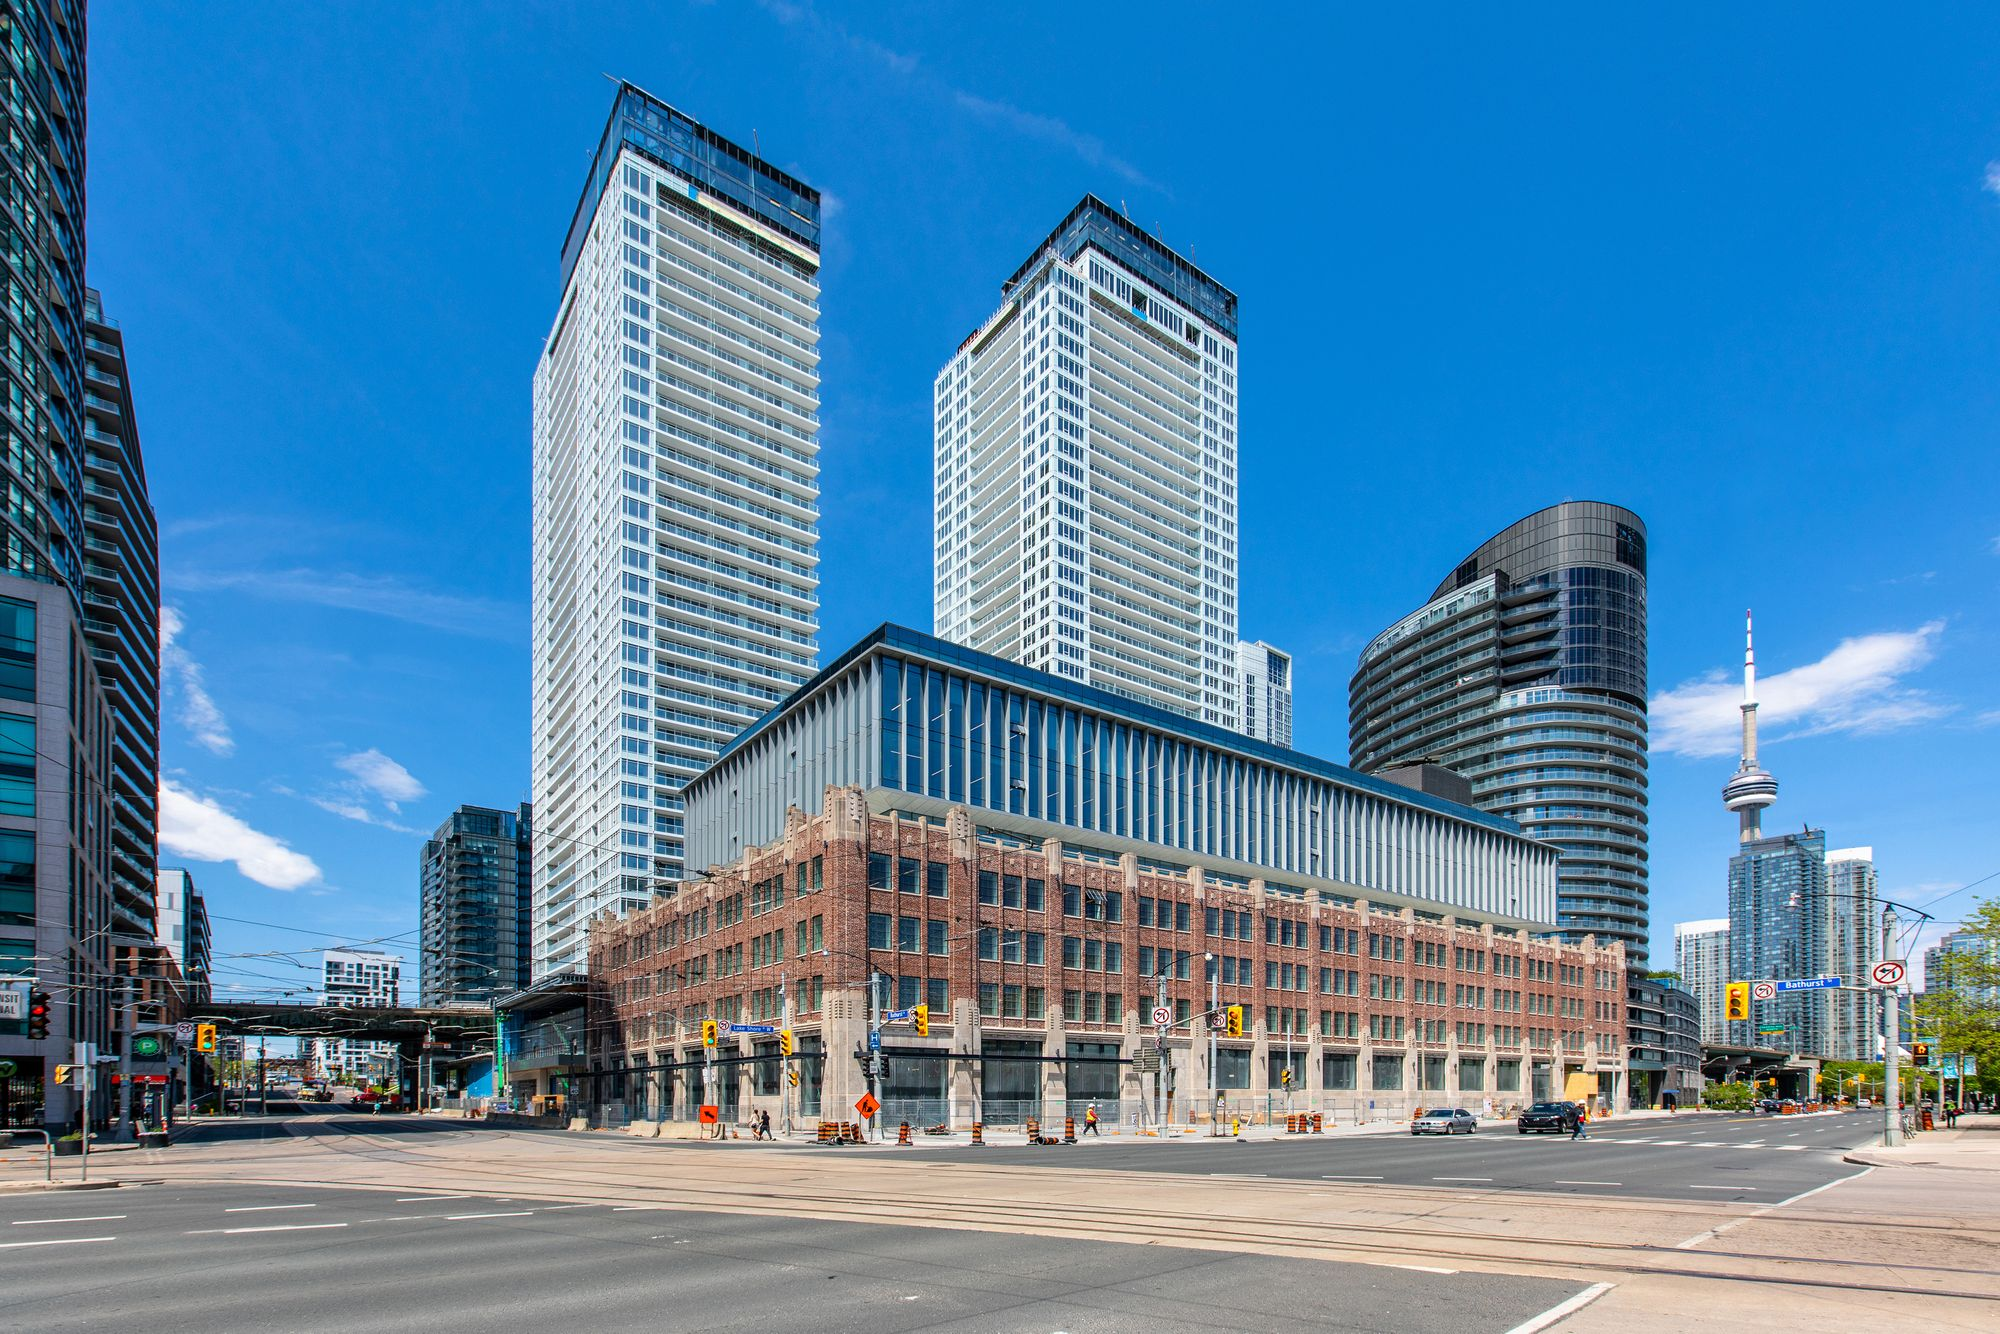 The LakeShore Condos at 500 Lake Shore Blvd W & 19 Bathurst St. This condo is located in  Downtown, Toronto